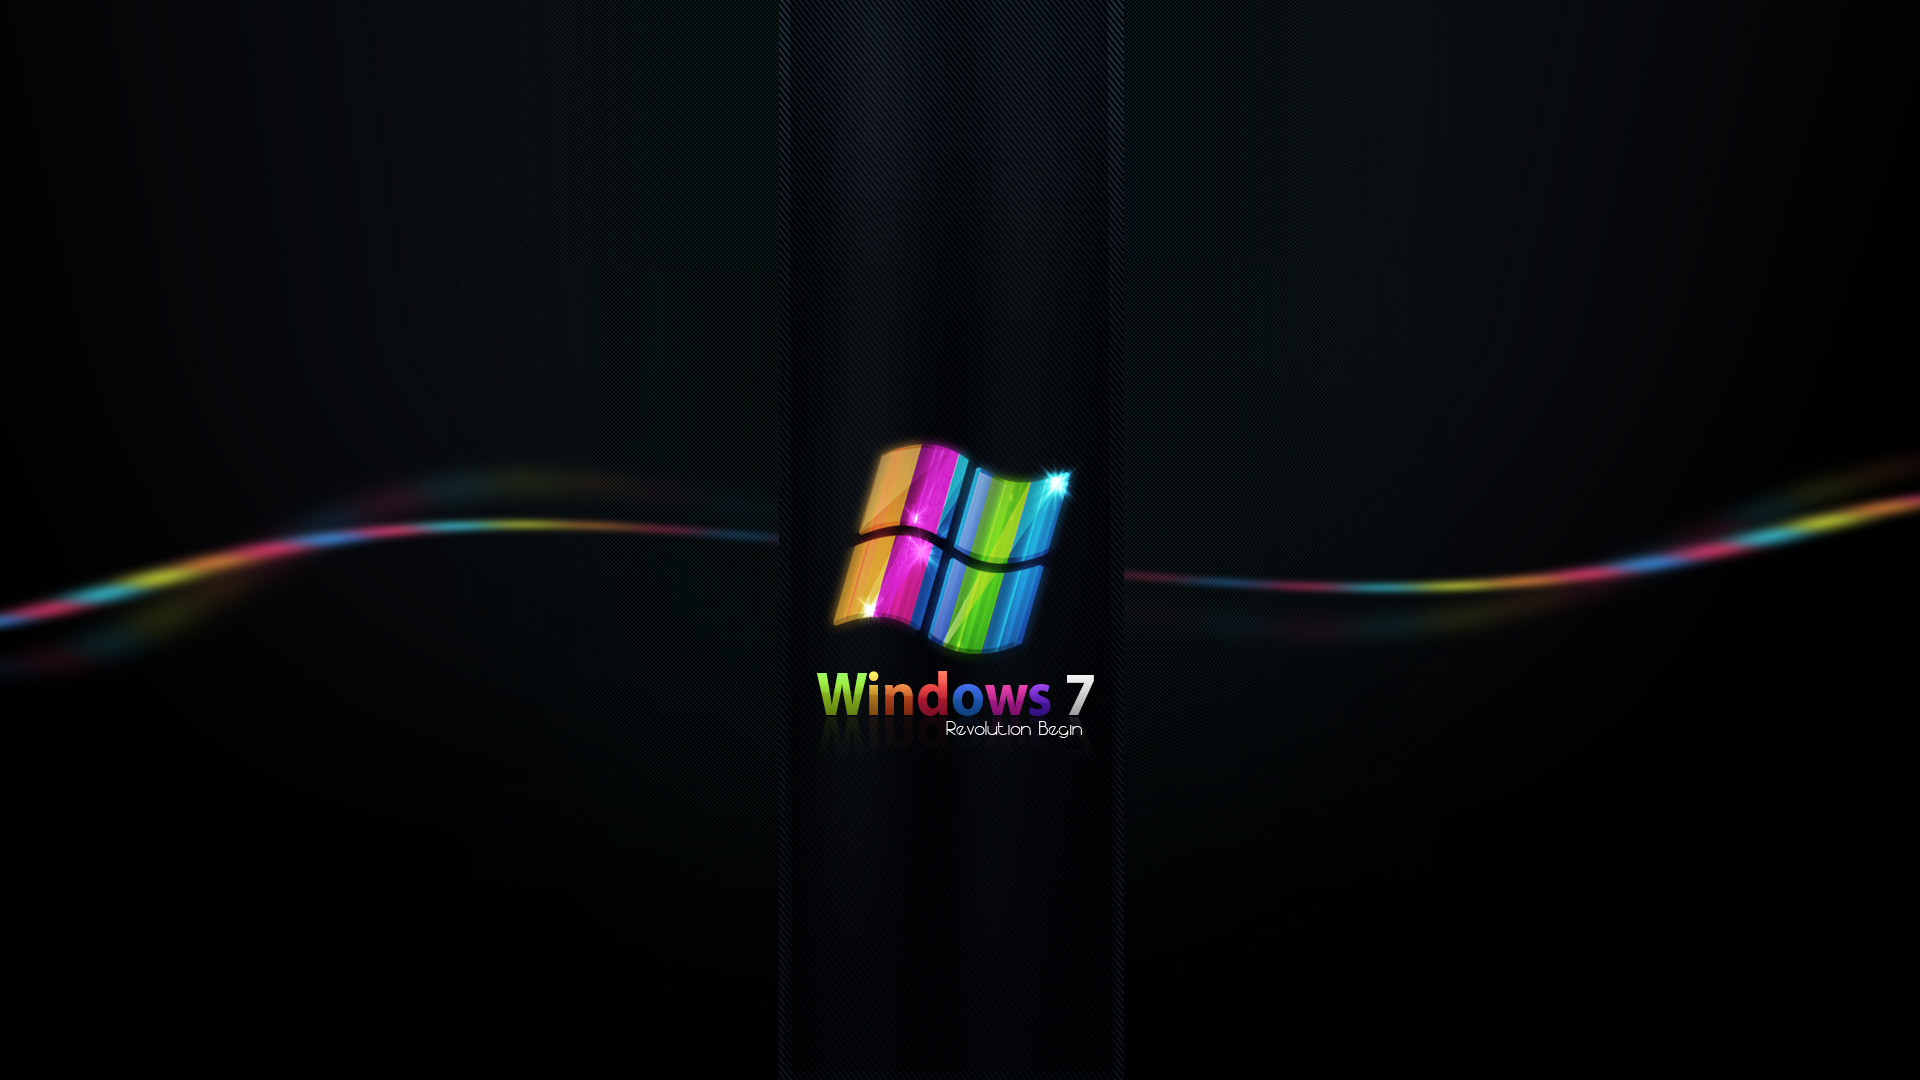 animated wallpapers for windows 7 (45+ images)